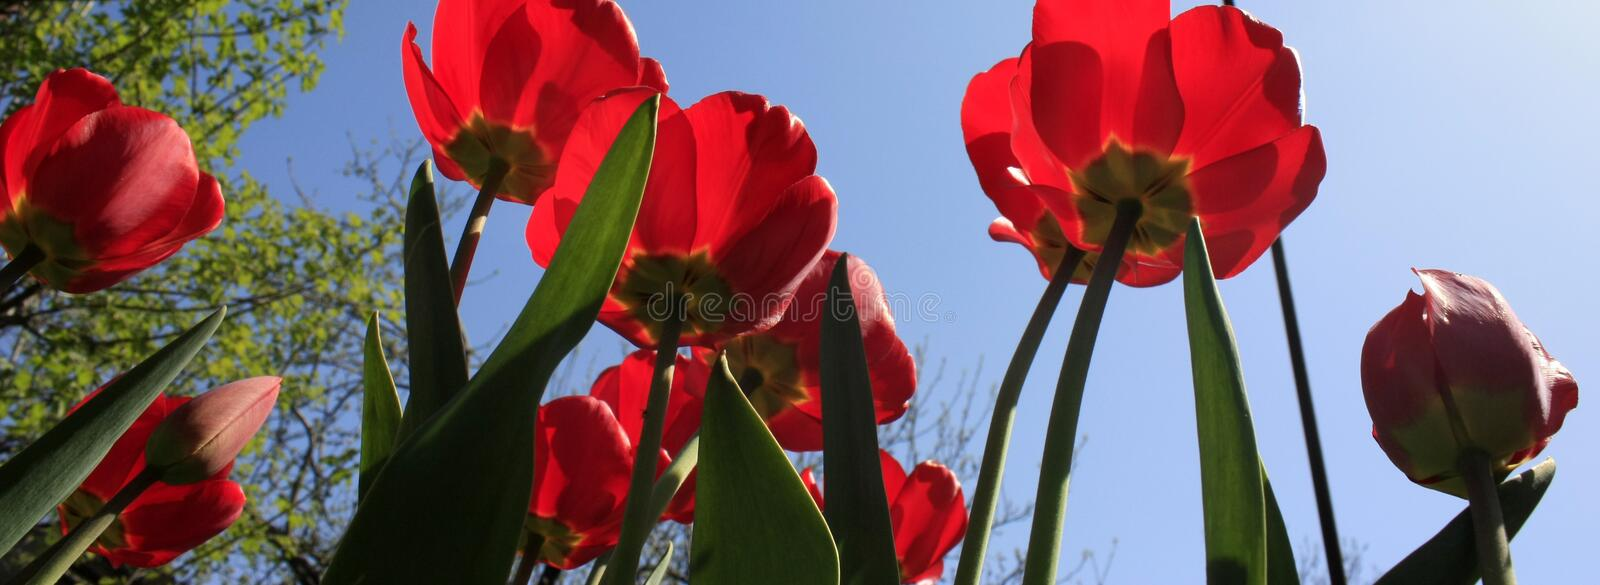 A bouquet of multi-colored tulips against the light close-up against the blue bluish sky. Bouquet of colorful tulips against the light sky flower green nature royalty free stock photo